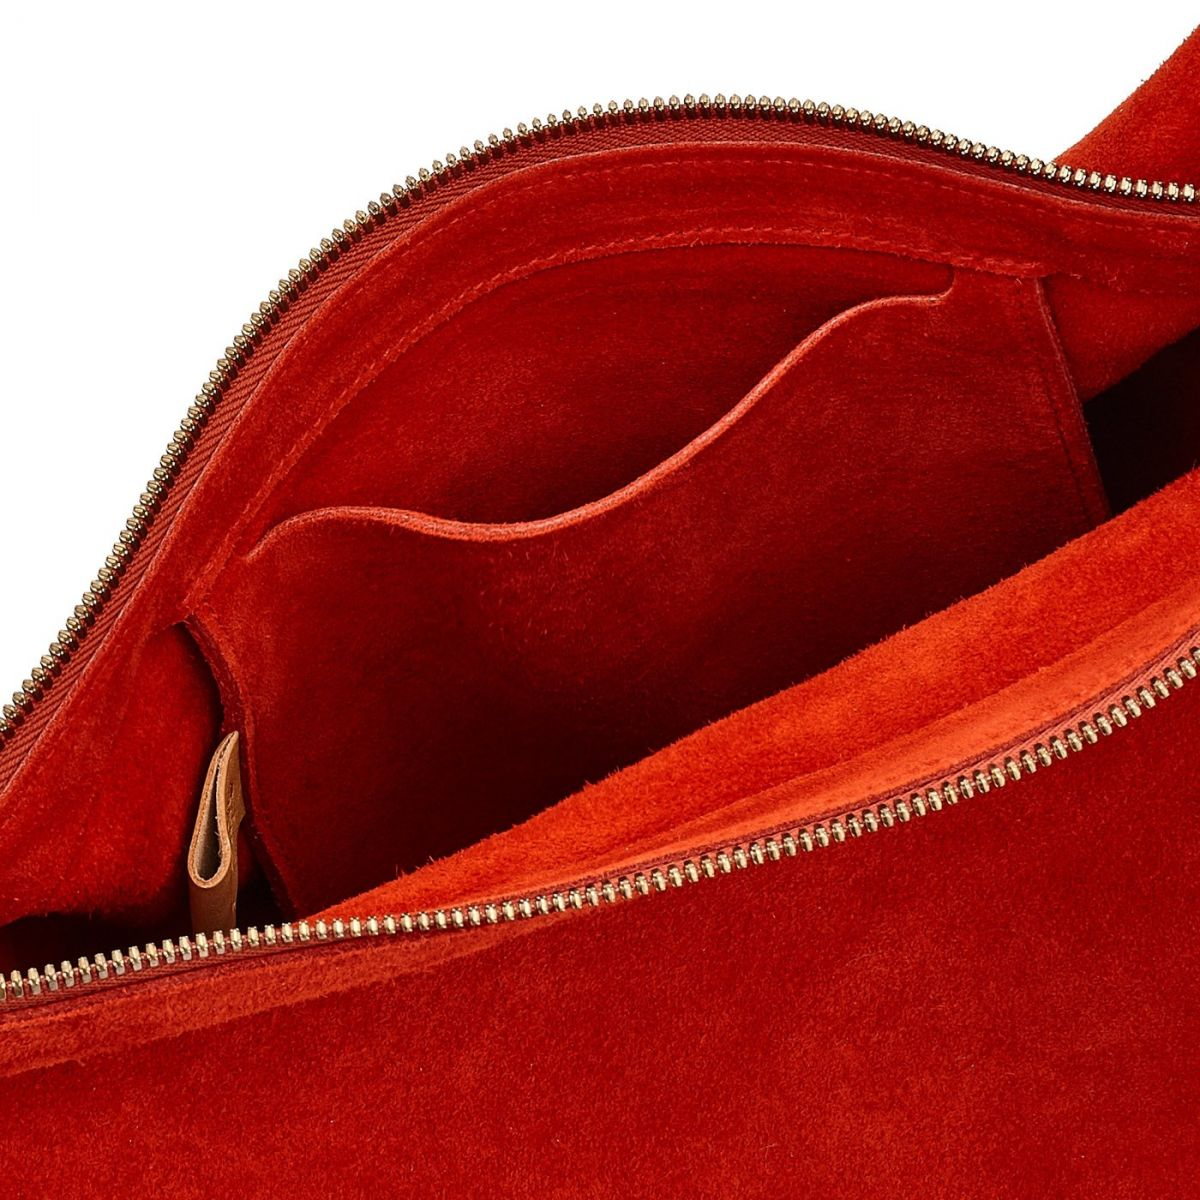 Women's Shoulder Bag  in Cowhide Leather BSH081 color Gazpacho | Details